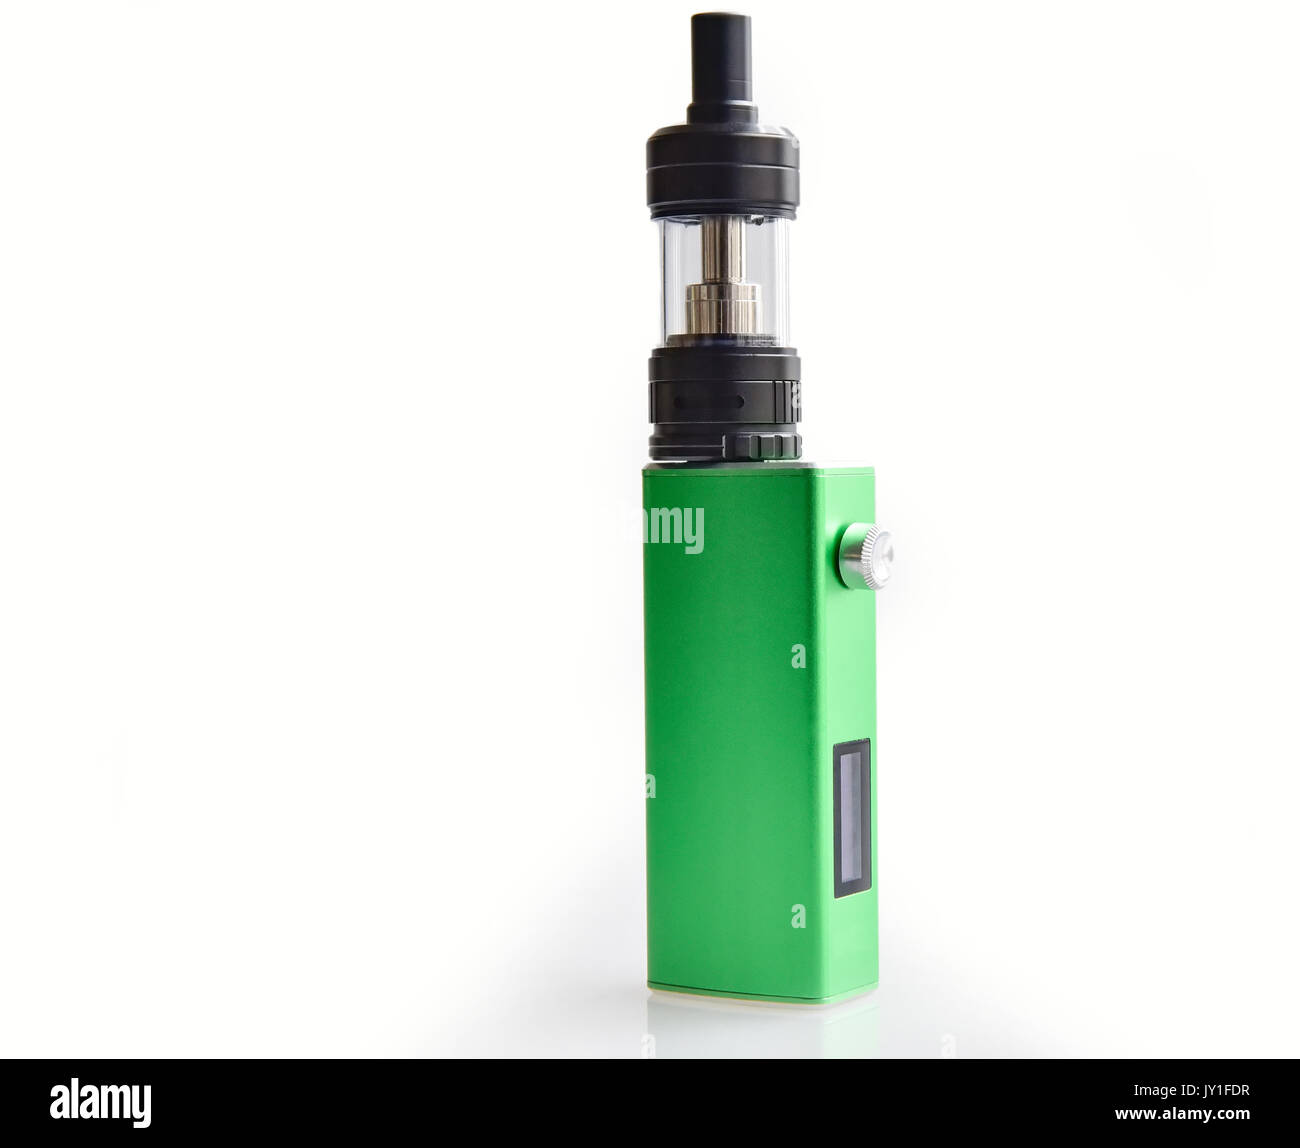 Simple green box mod on white background - Stock Image